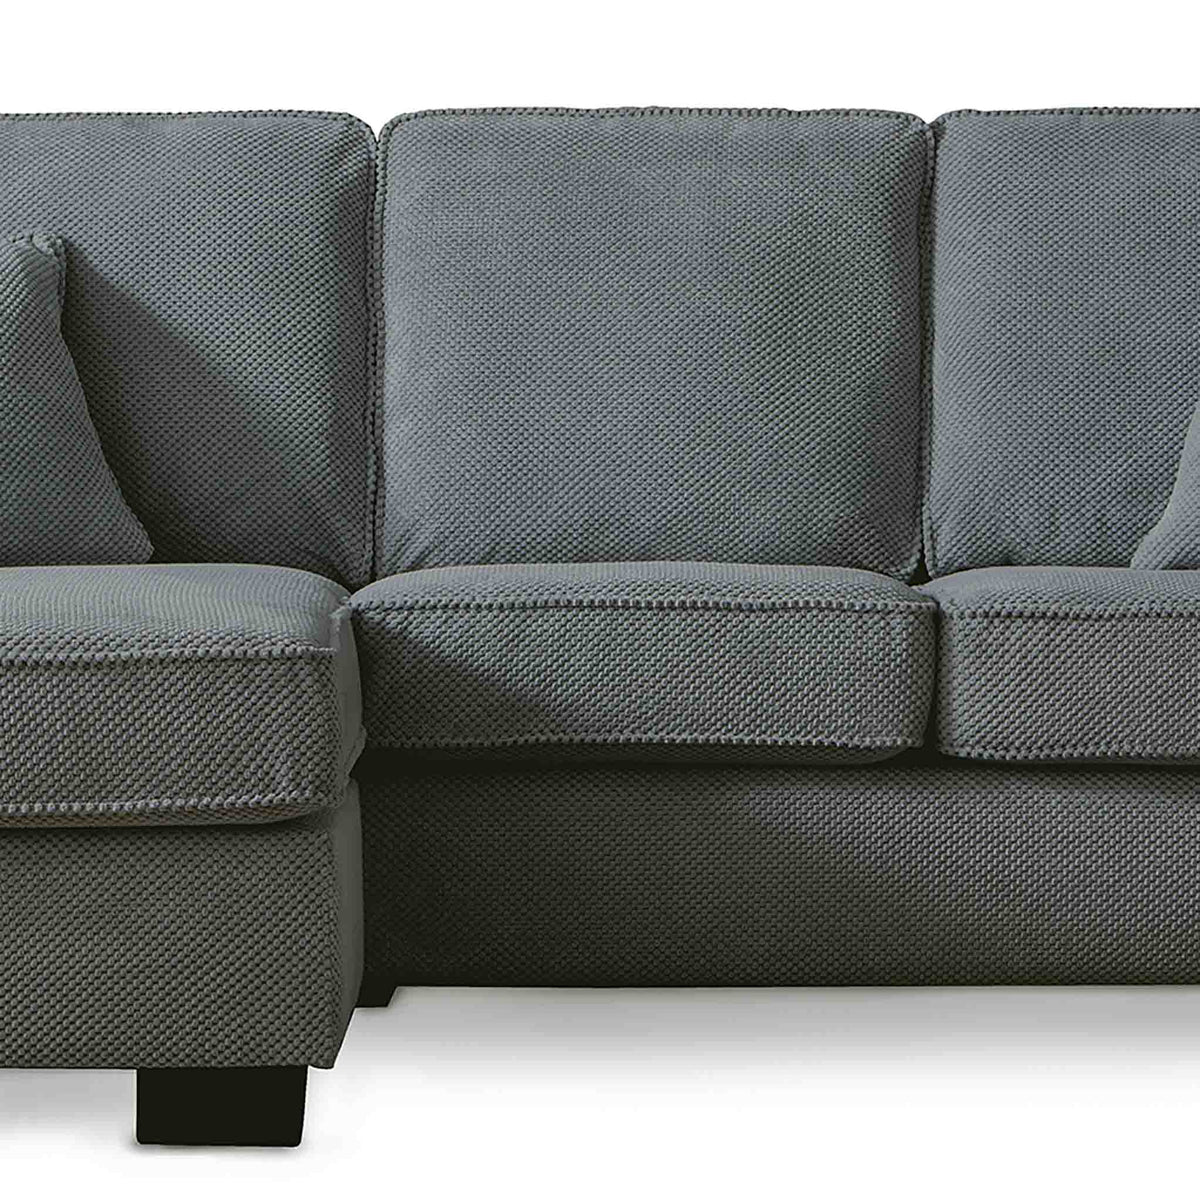 Dallas Charcoal Corner Chaise Sofa - Close up of mid section on sofa